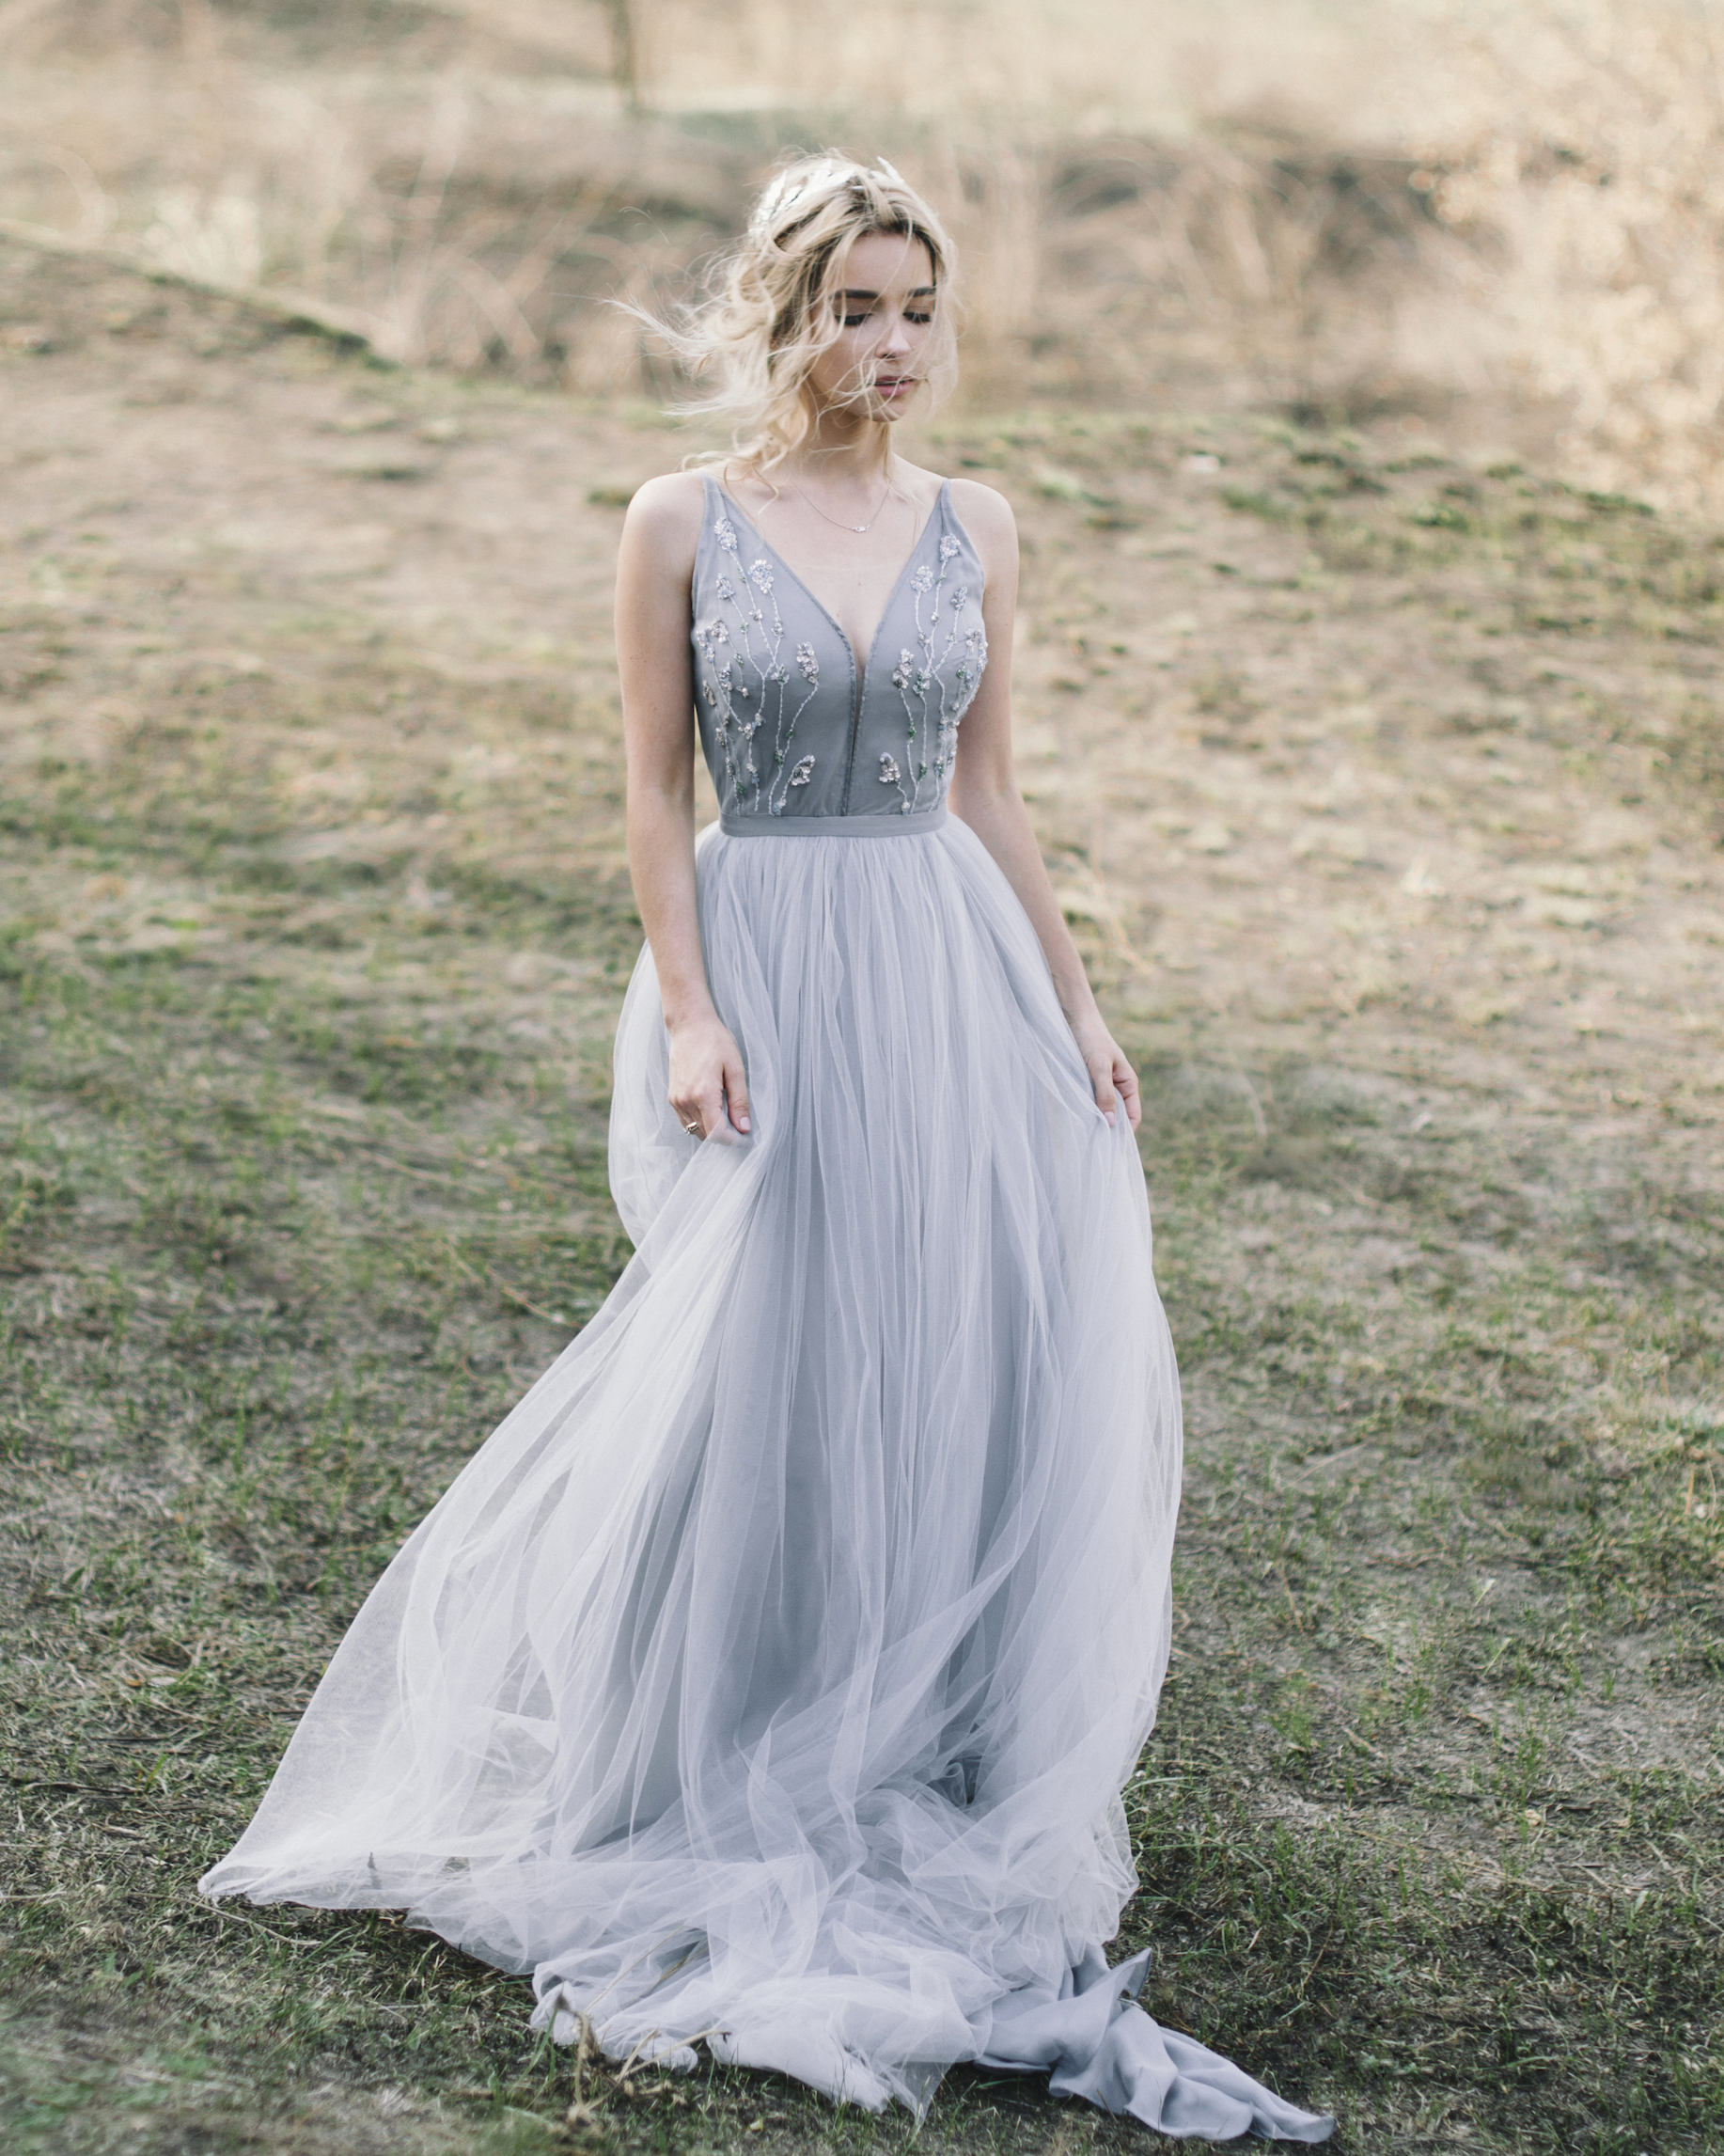 Tulle wedding gown Blue and gray wedding gown.jpg